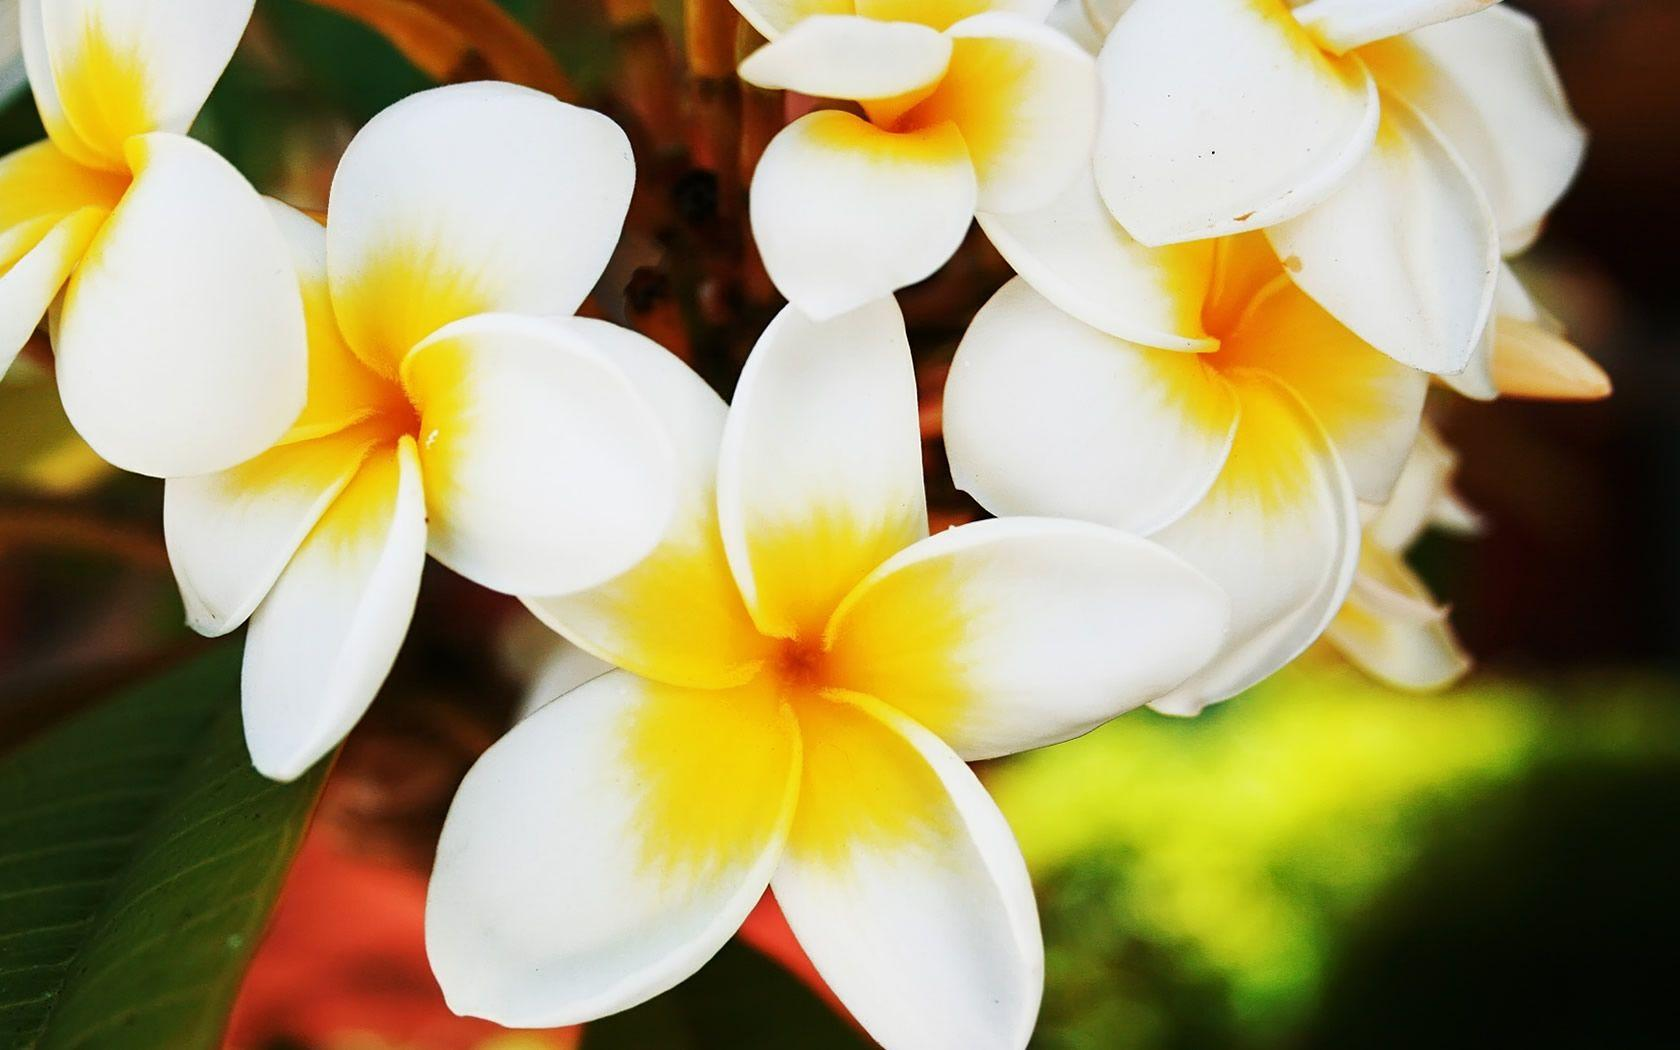 hawaiian flowers wallpapers  wallpaper cave, Natural flower